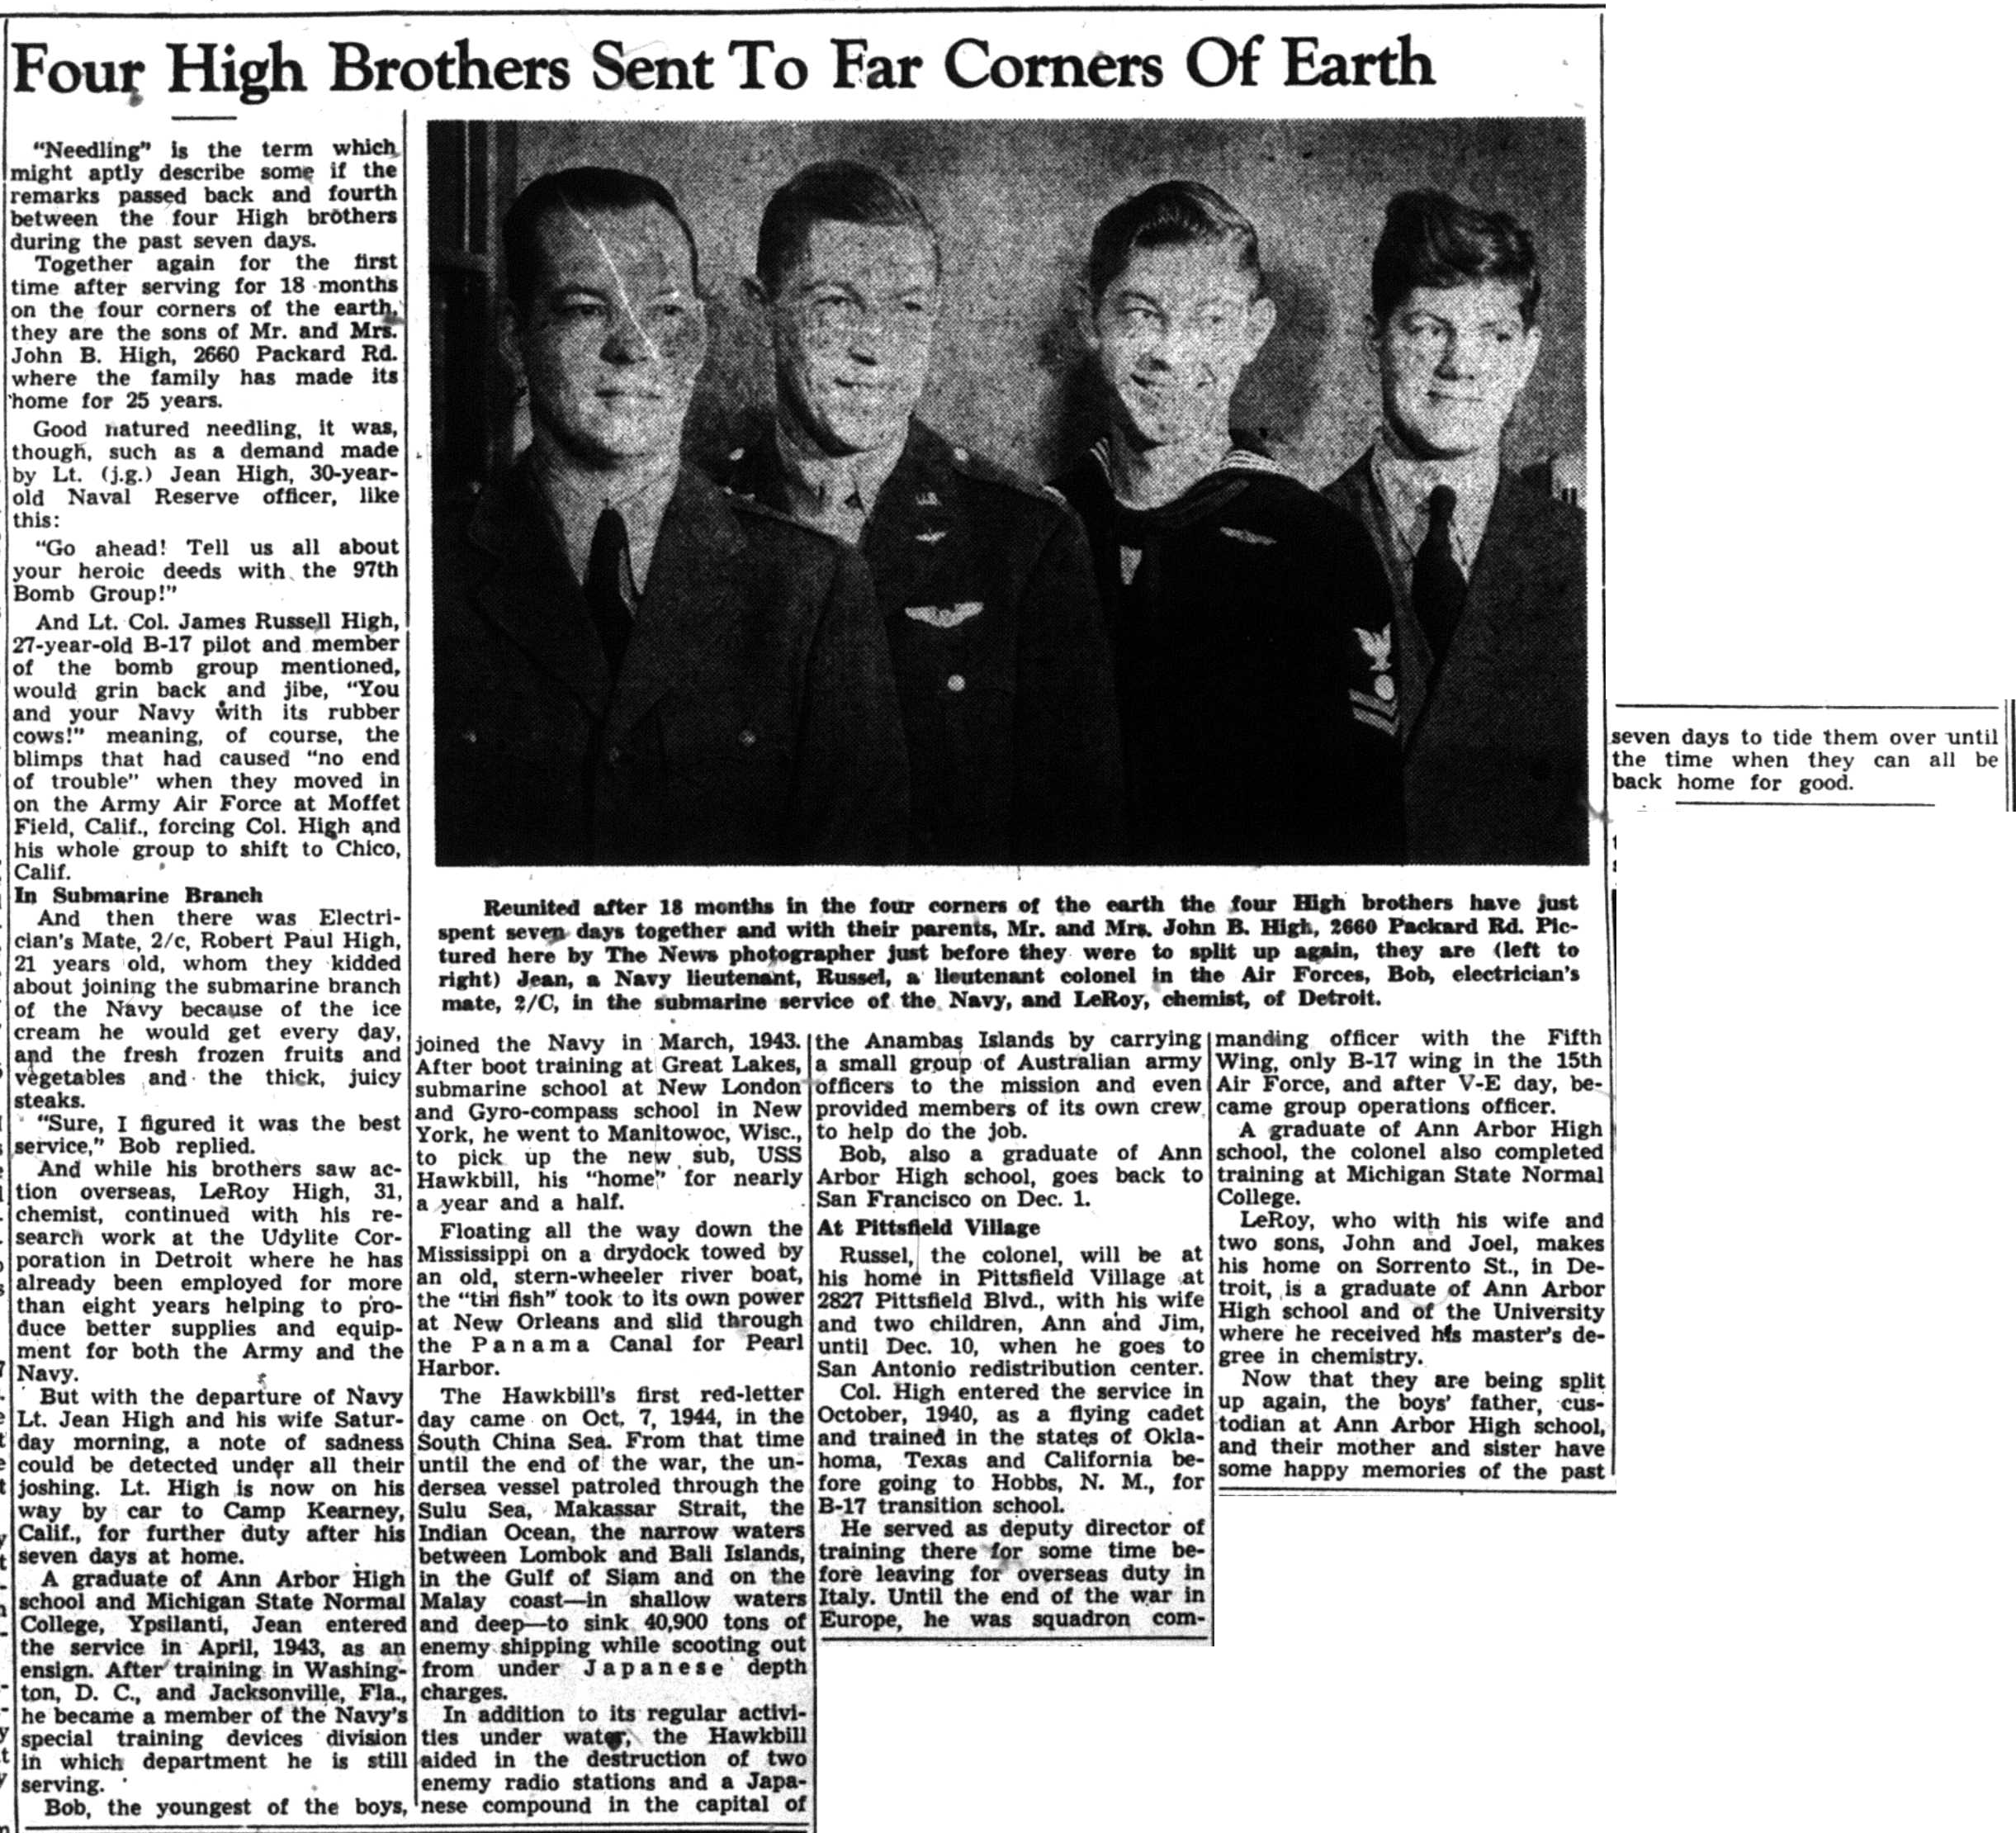 Four High Brothers Sent To Far Corners Of Earth image